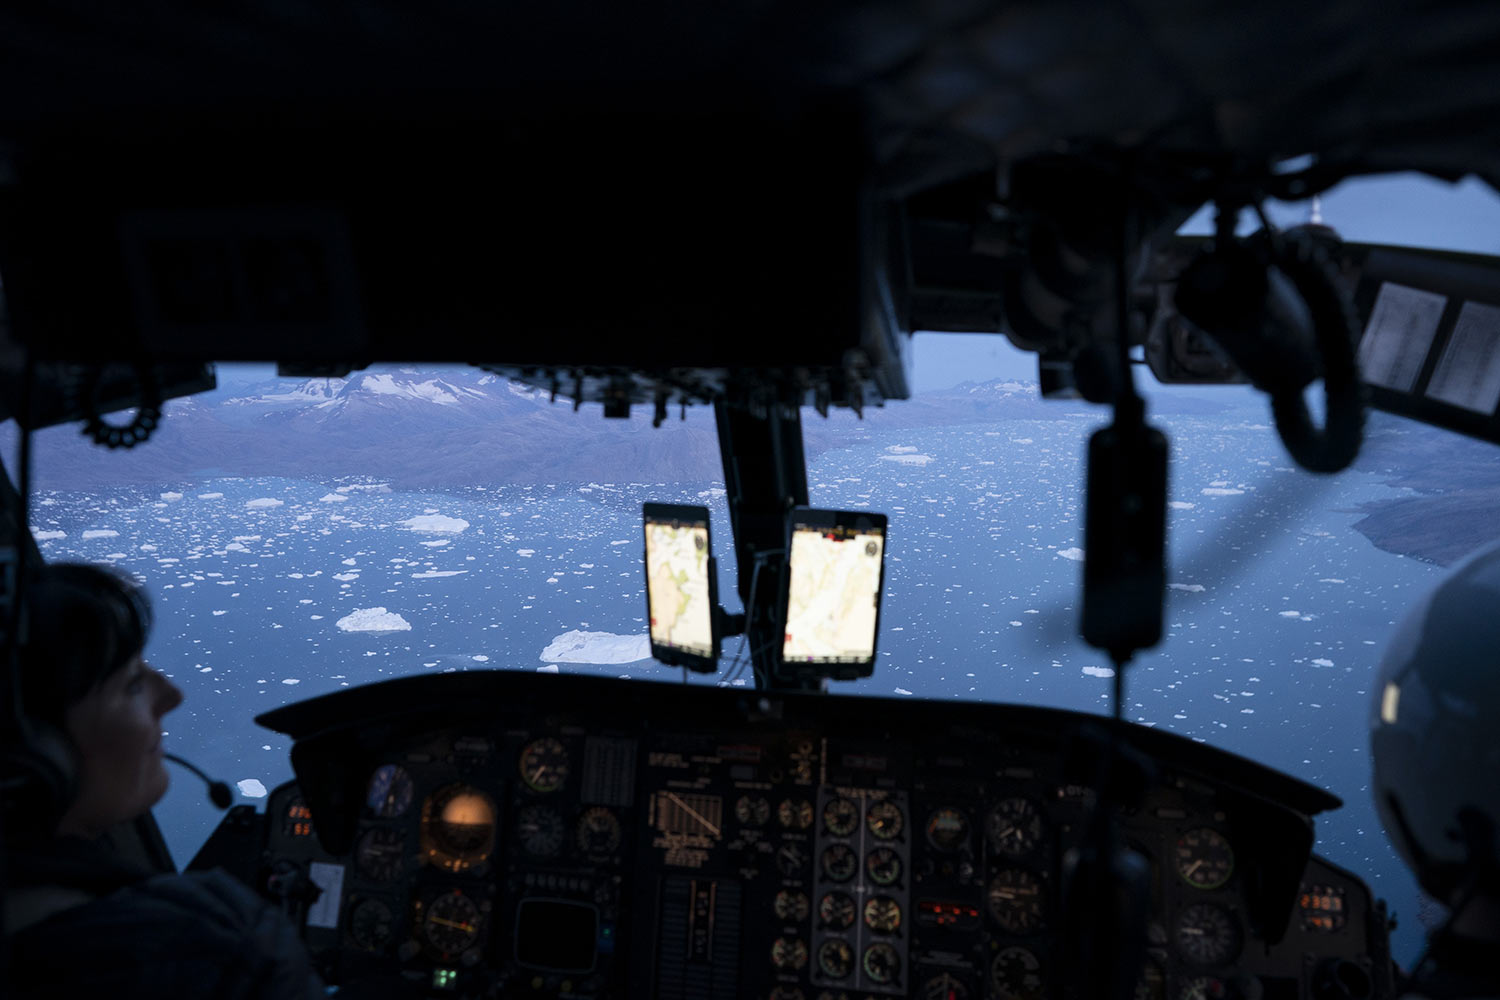 A helicopter flies over hundreds of icebergs floating near the Helheim glacier, on Aug. 16, 2019, in Greenland. Summer 2019 is hitting the island hard with record-shattering heat and extreme melt. Scientists estimate that by the end of the summer, about 440 billion tons of ice, maybe more, will have melted or calved off Greenland's giant ice sheet. Helheim glacier has shrunk about 6 miles (10 kilometers) since scientists visited in 2005. (AP Photo/Felipe Dana)